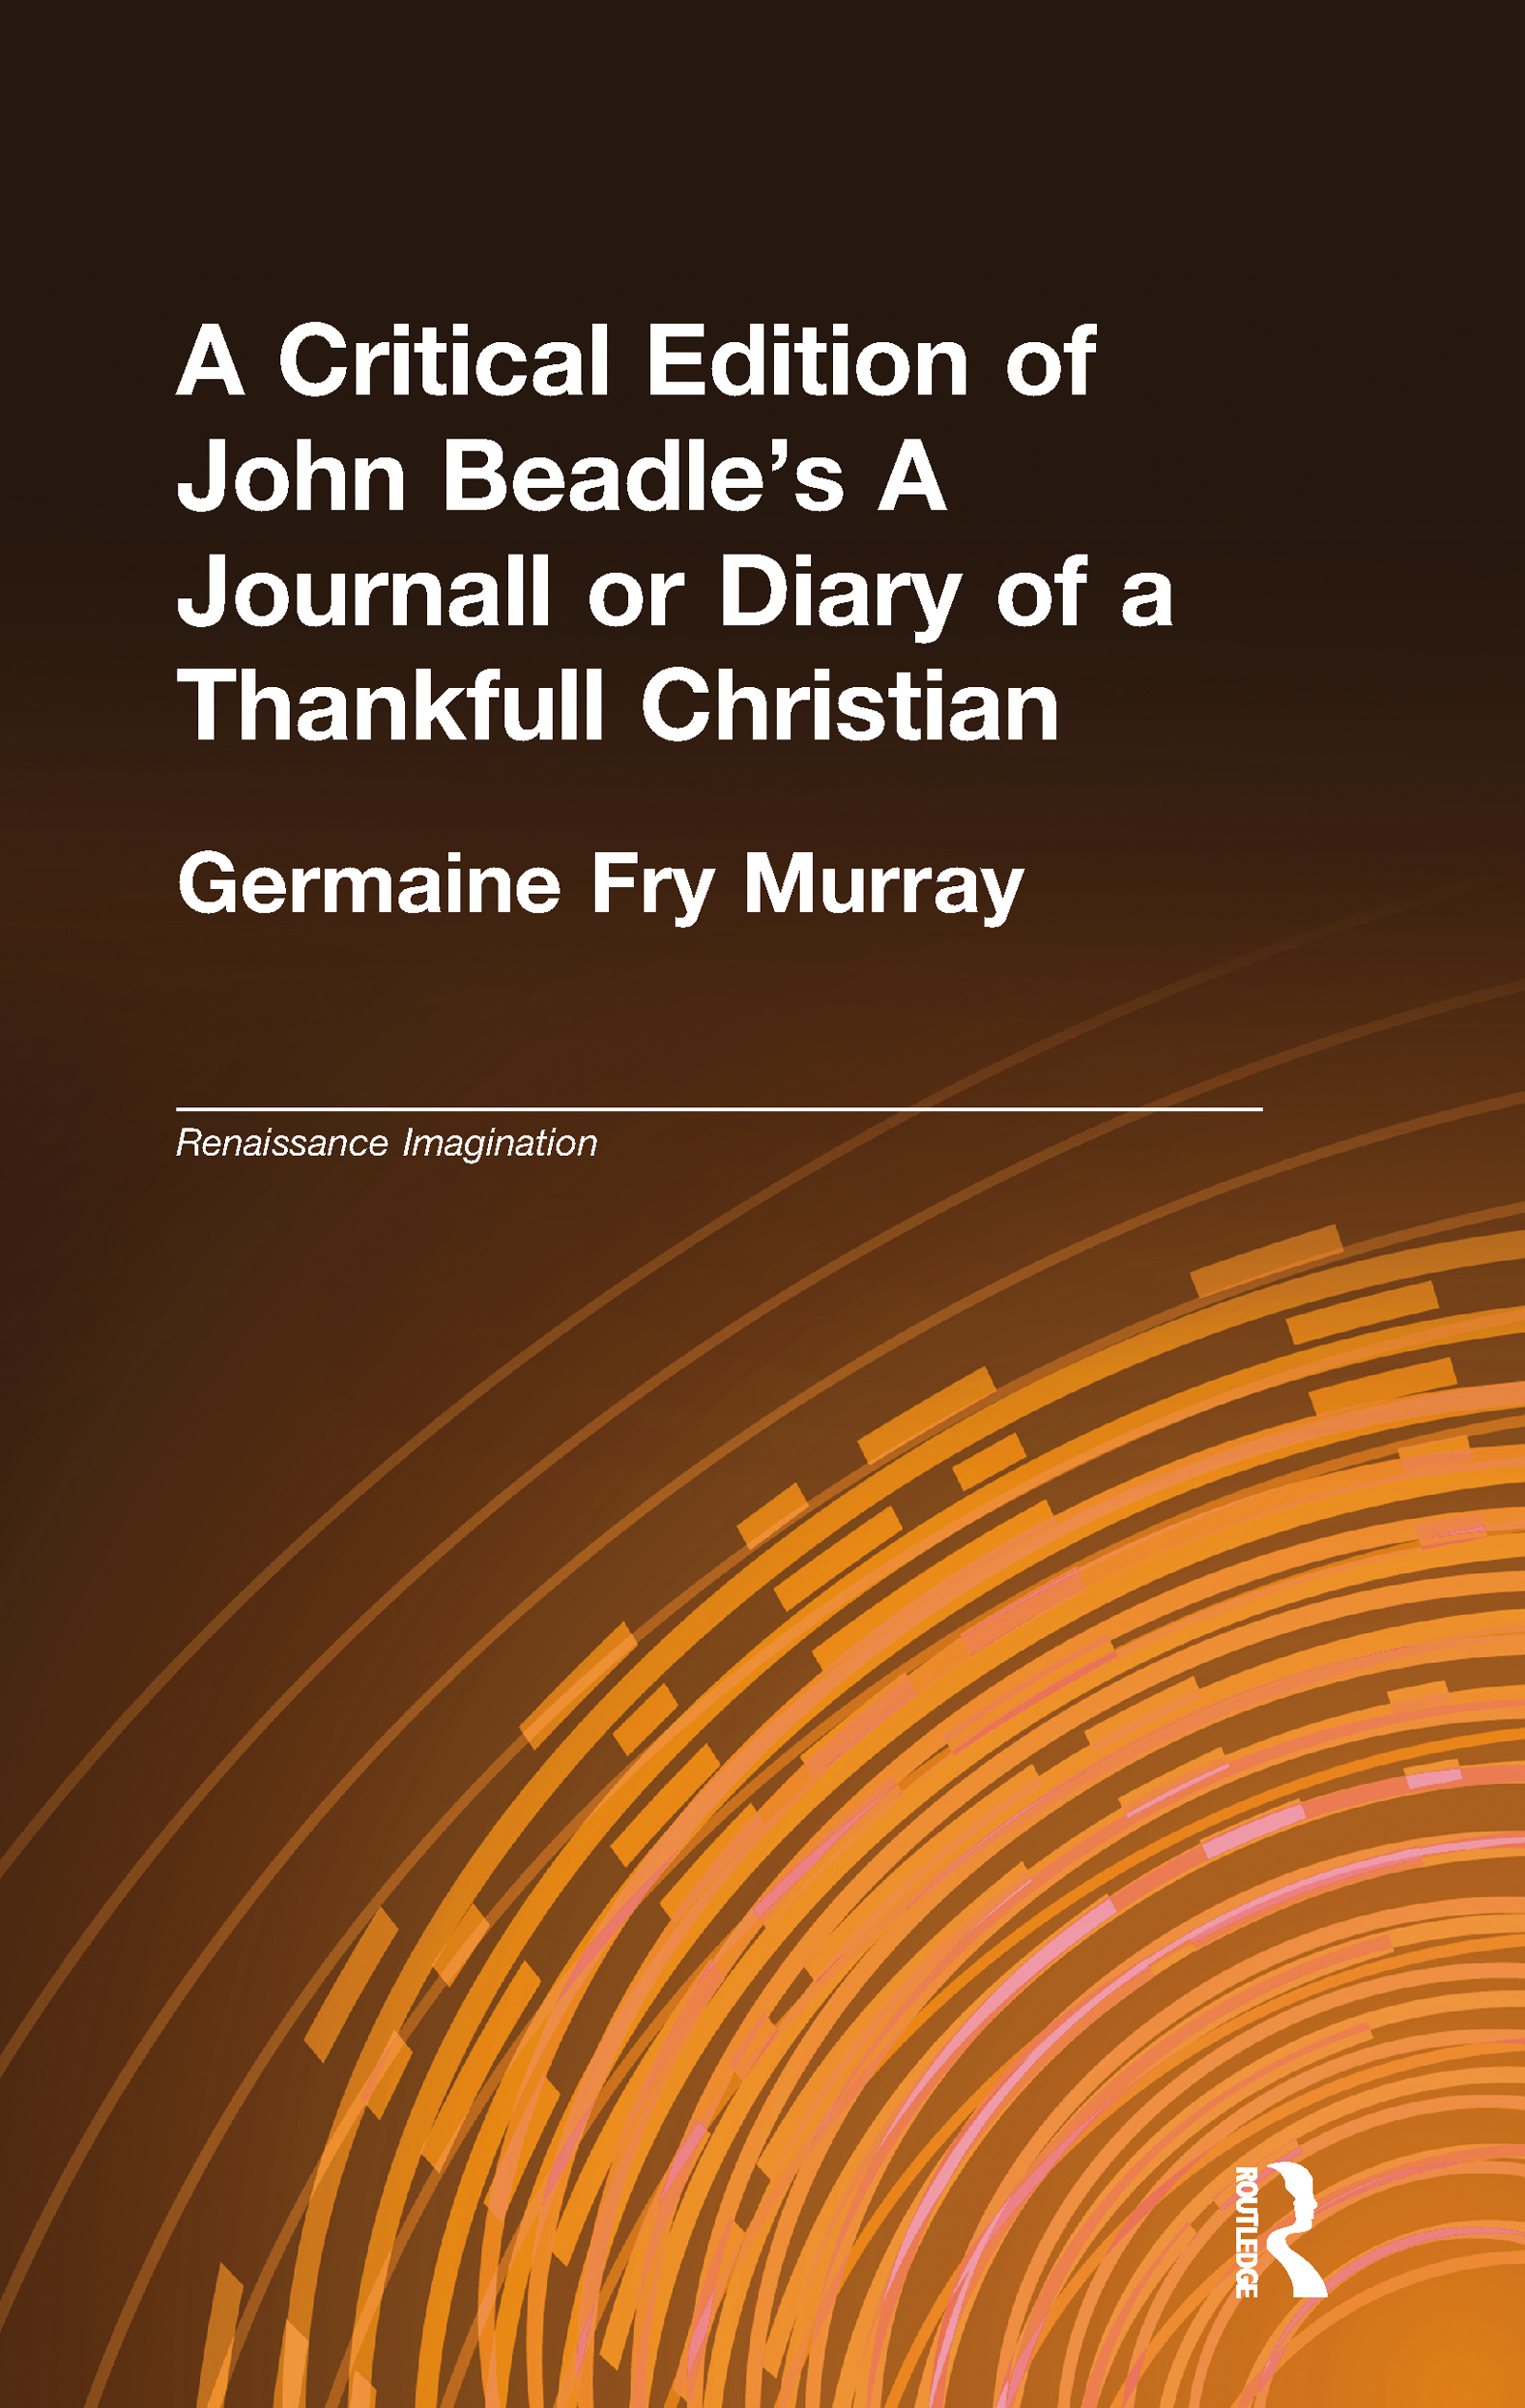 A Critical Edition of John Beadle's A Journall or Diary of a Thankfull Christian book cover